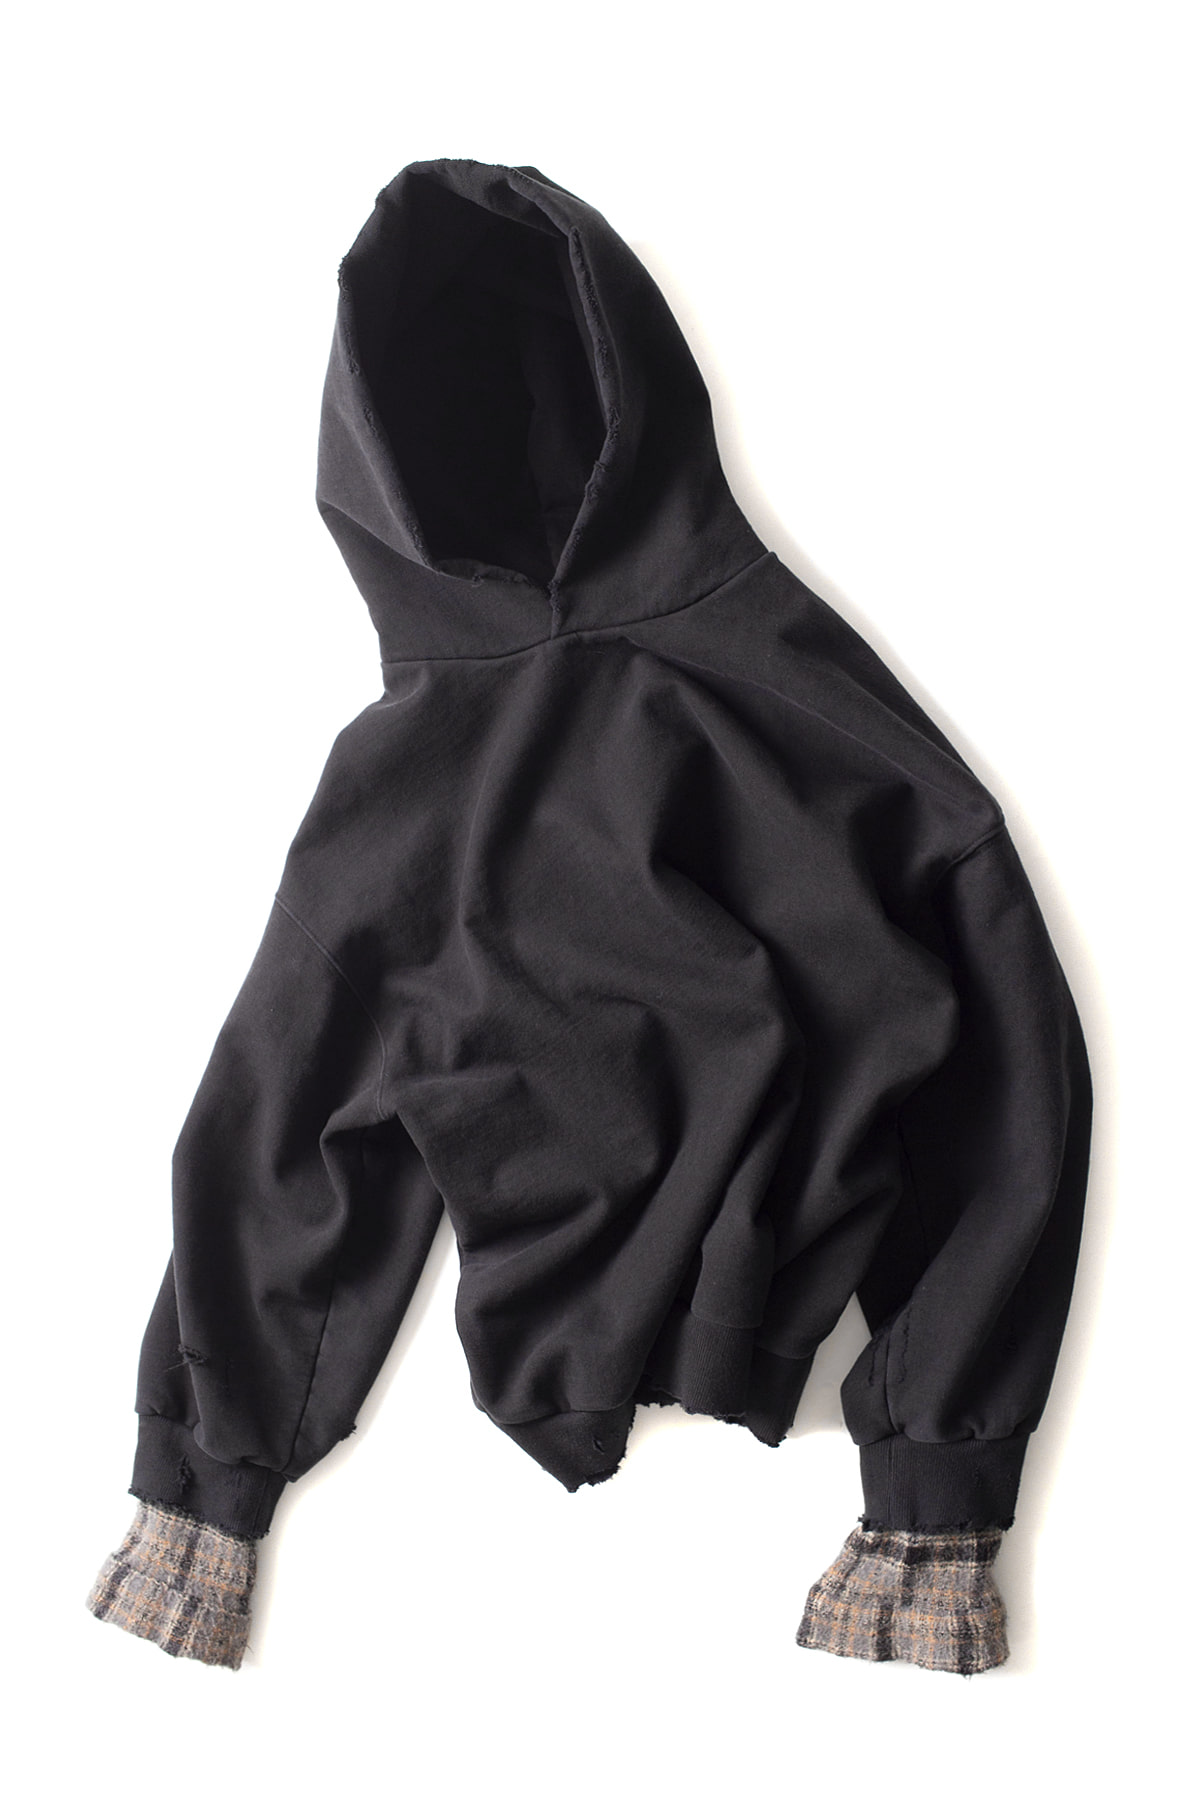 BIRTHDAYSUIT : Wool Check Oversized Hoody (Black)